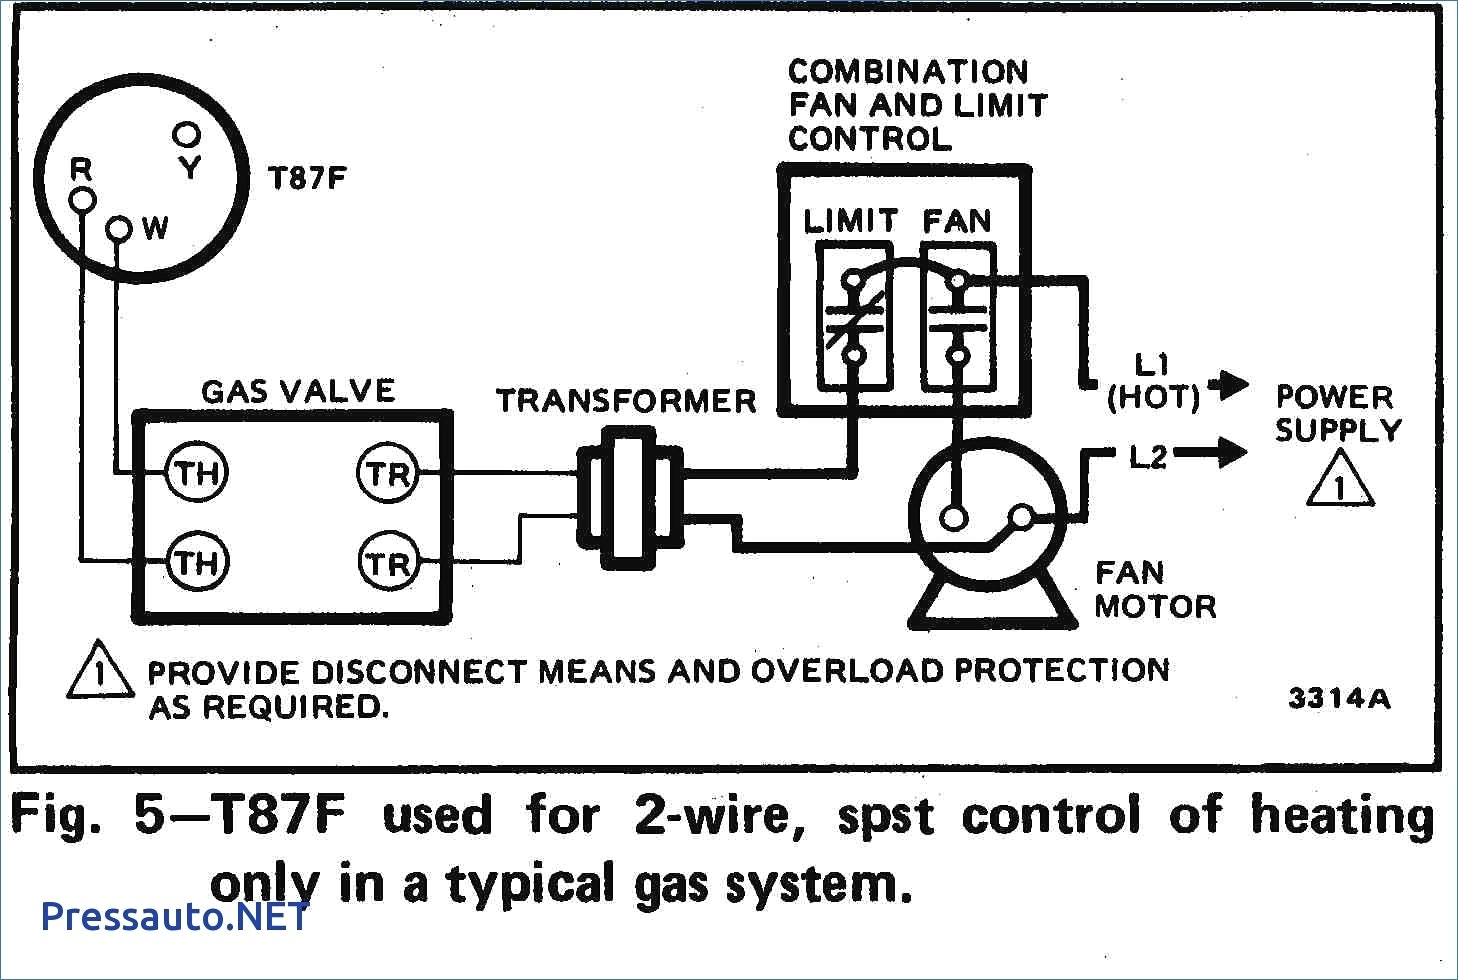 gas heater wiring diagram a1a47 gas valve for boiler wiring diagram digital resources  gas valve for boiler wiring diagram